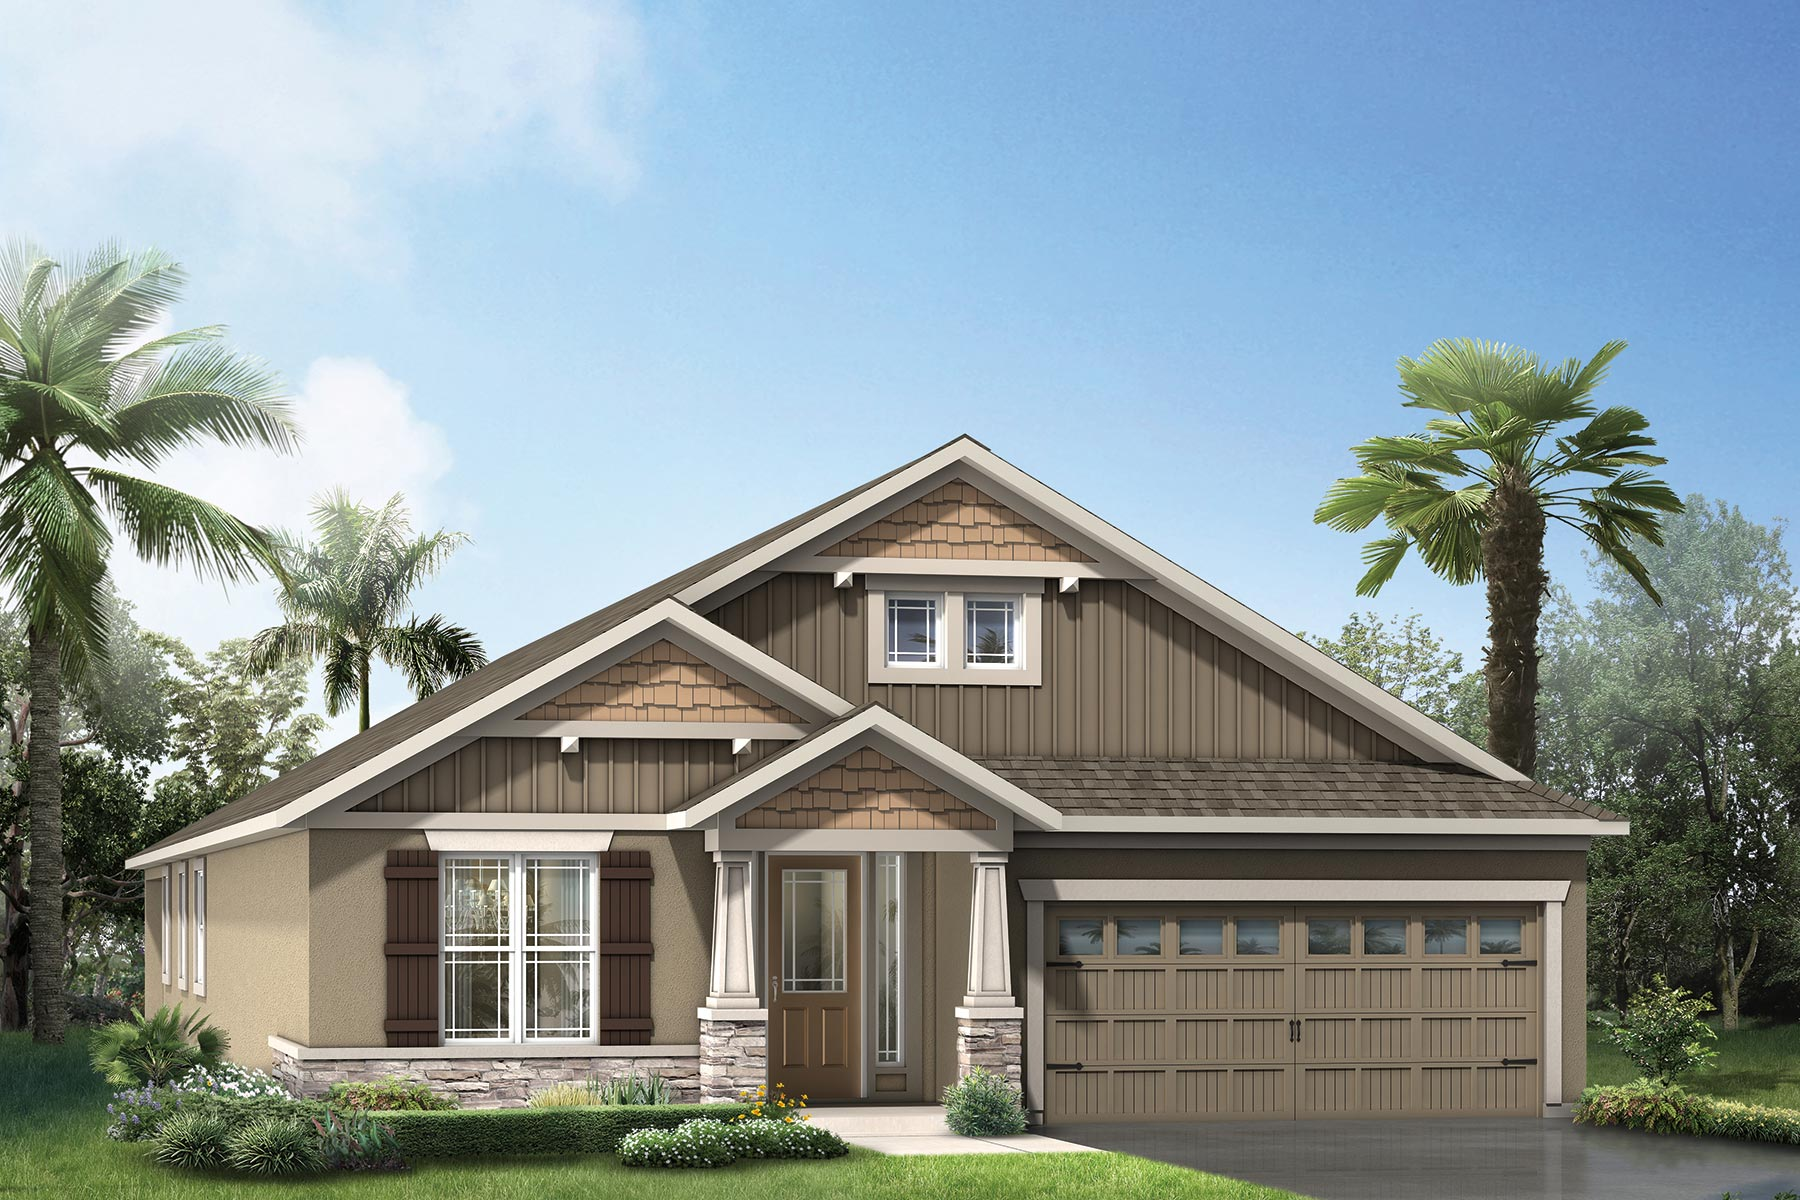 Dominica Plan Elevation Front at Tapestry in Kissimmee Florida by Mattamy Homes